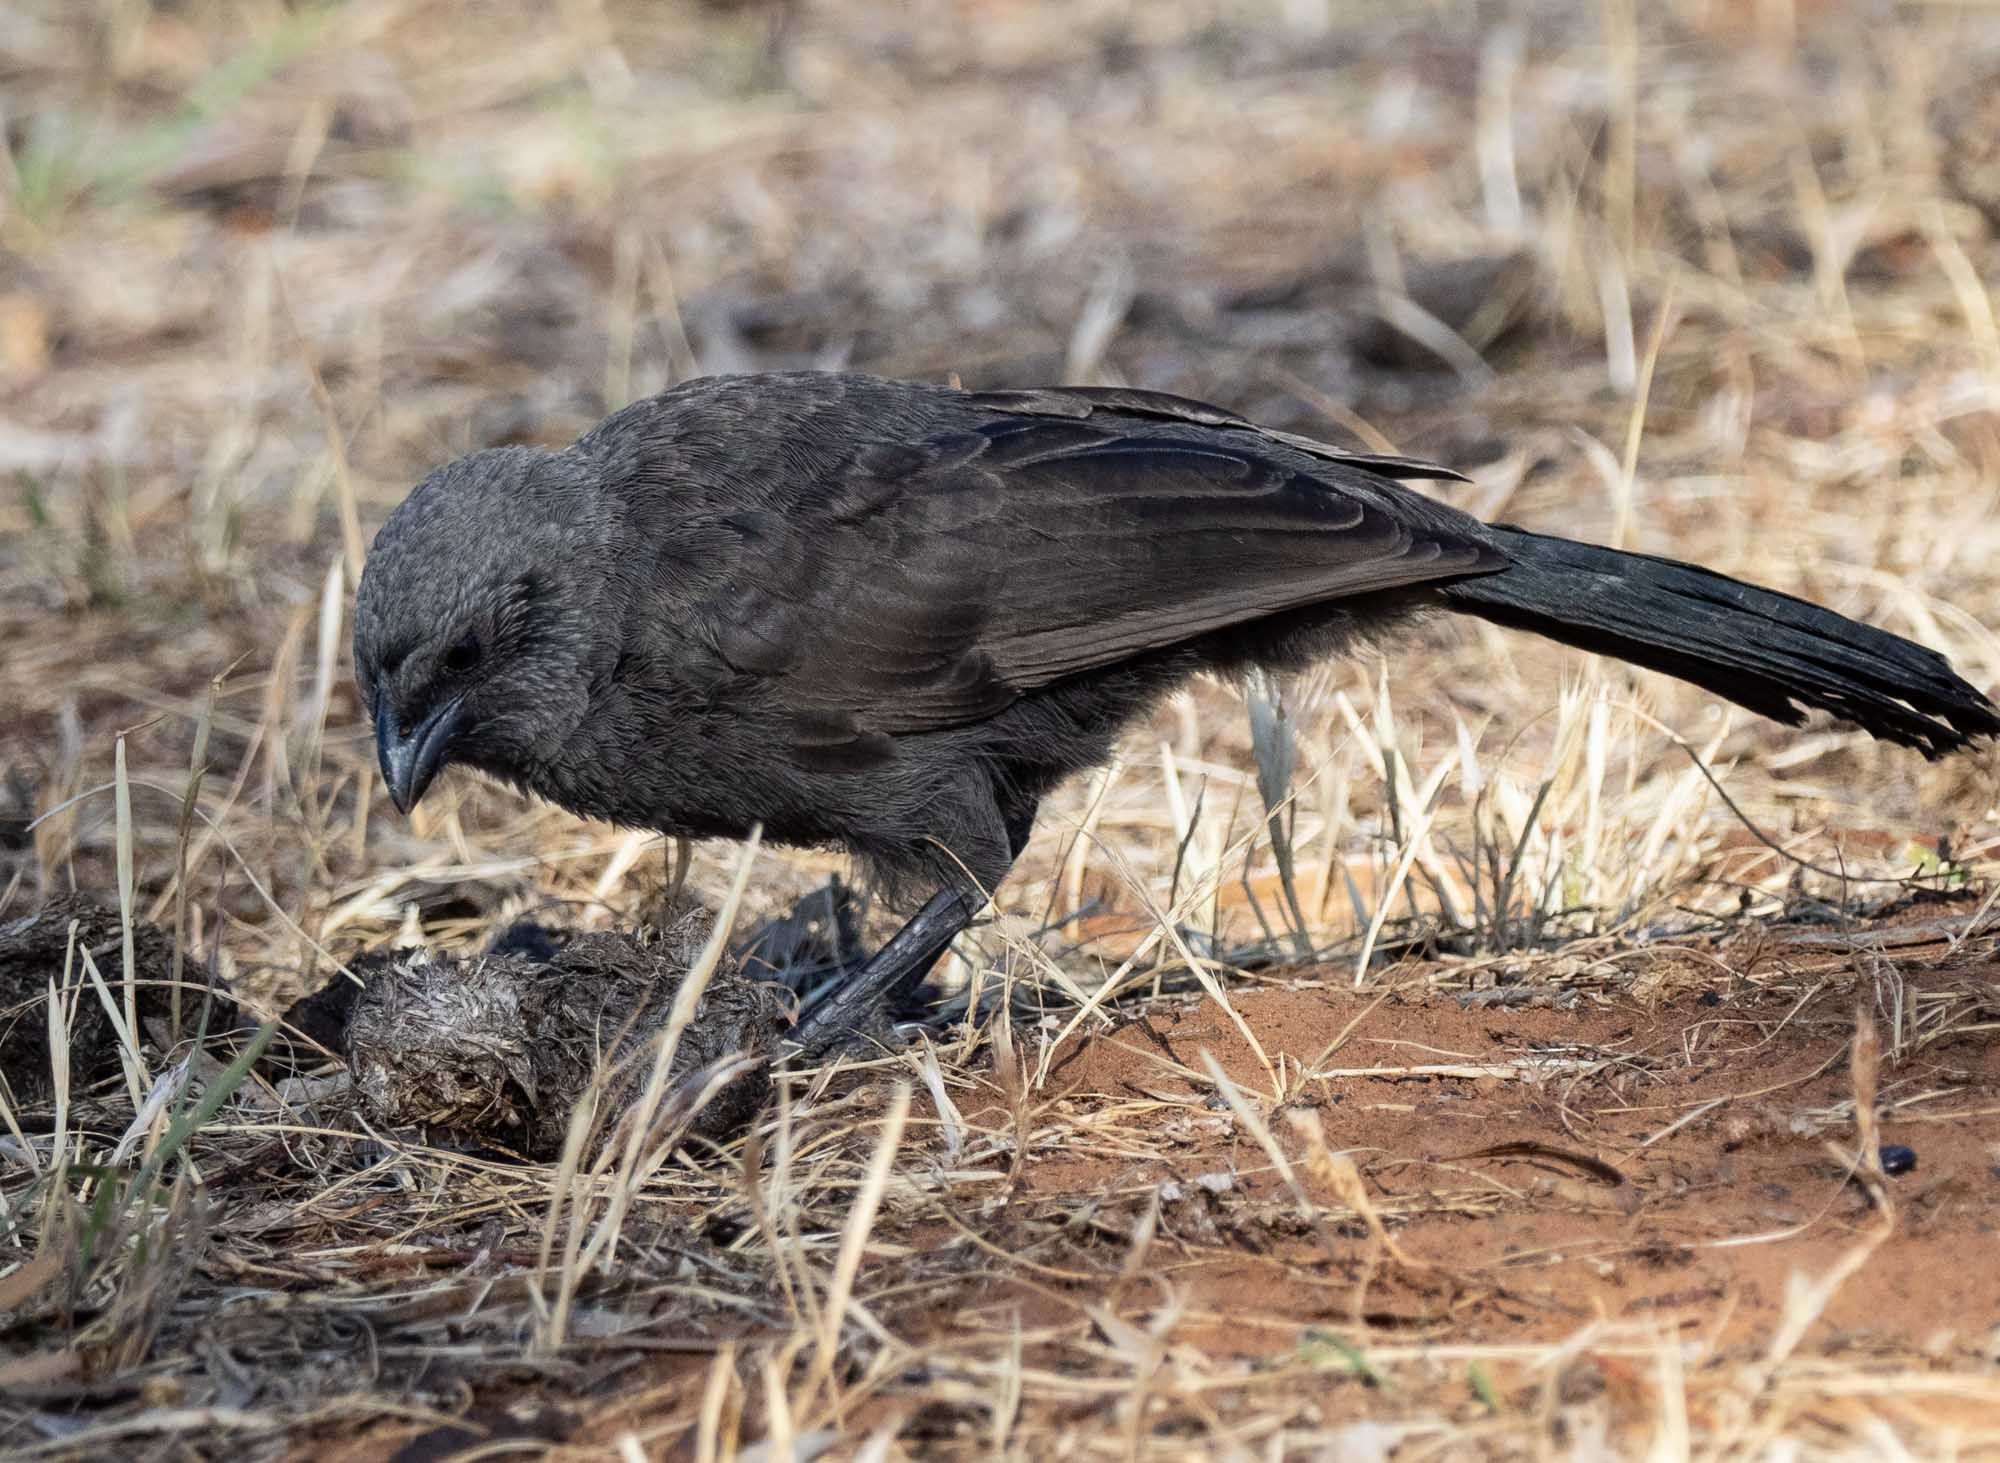 Apostlebird - just one of a large troupe